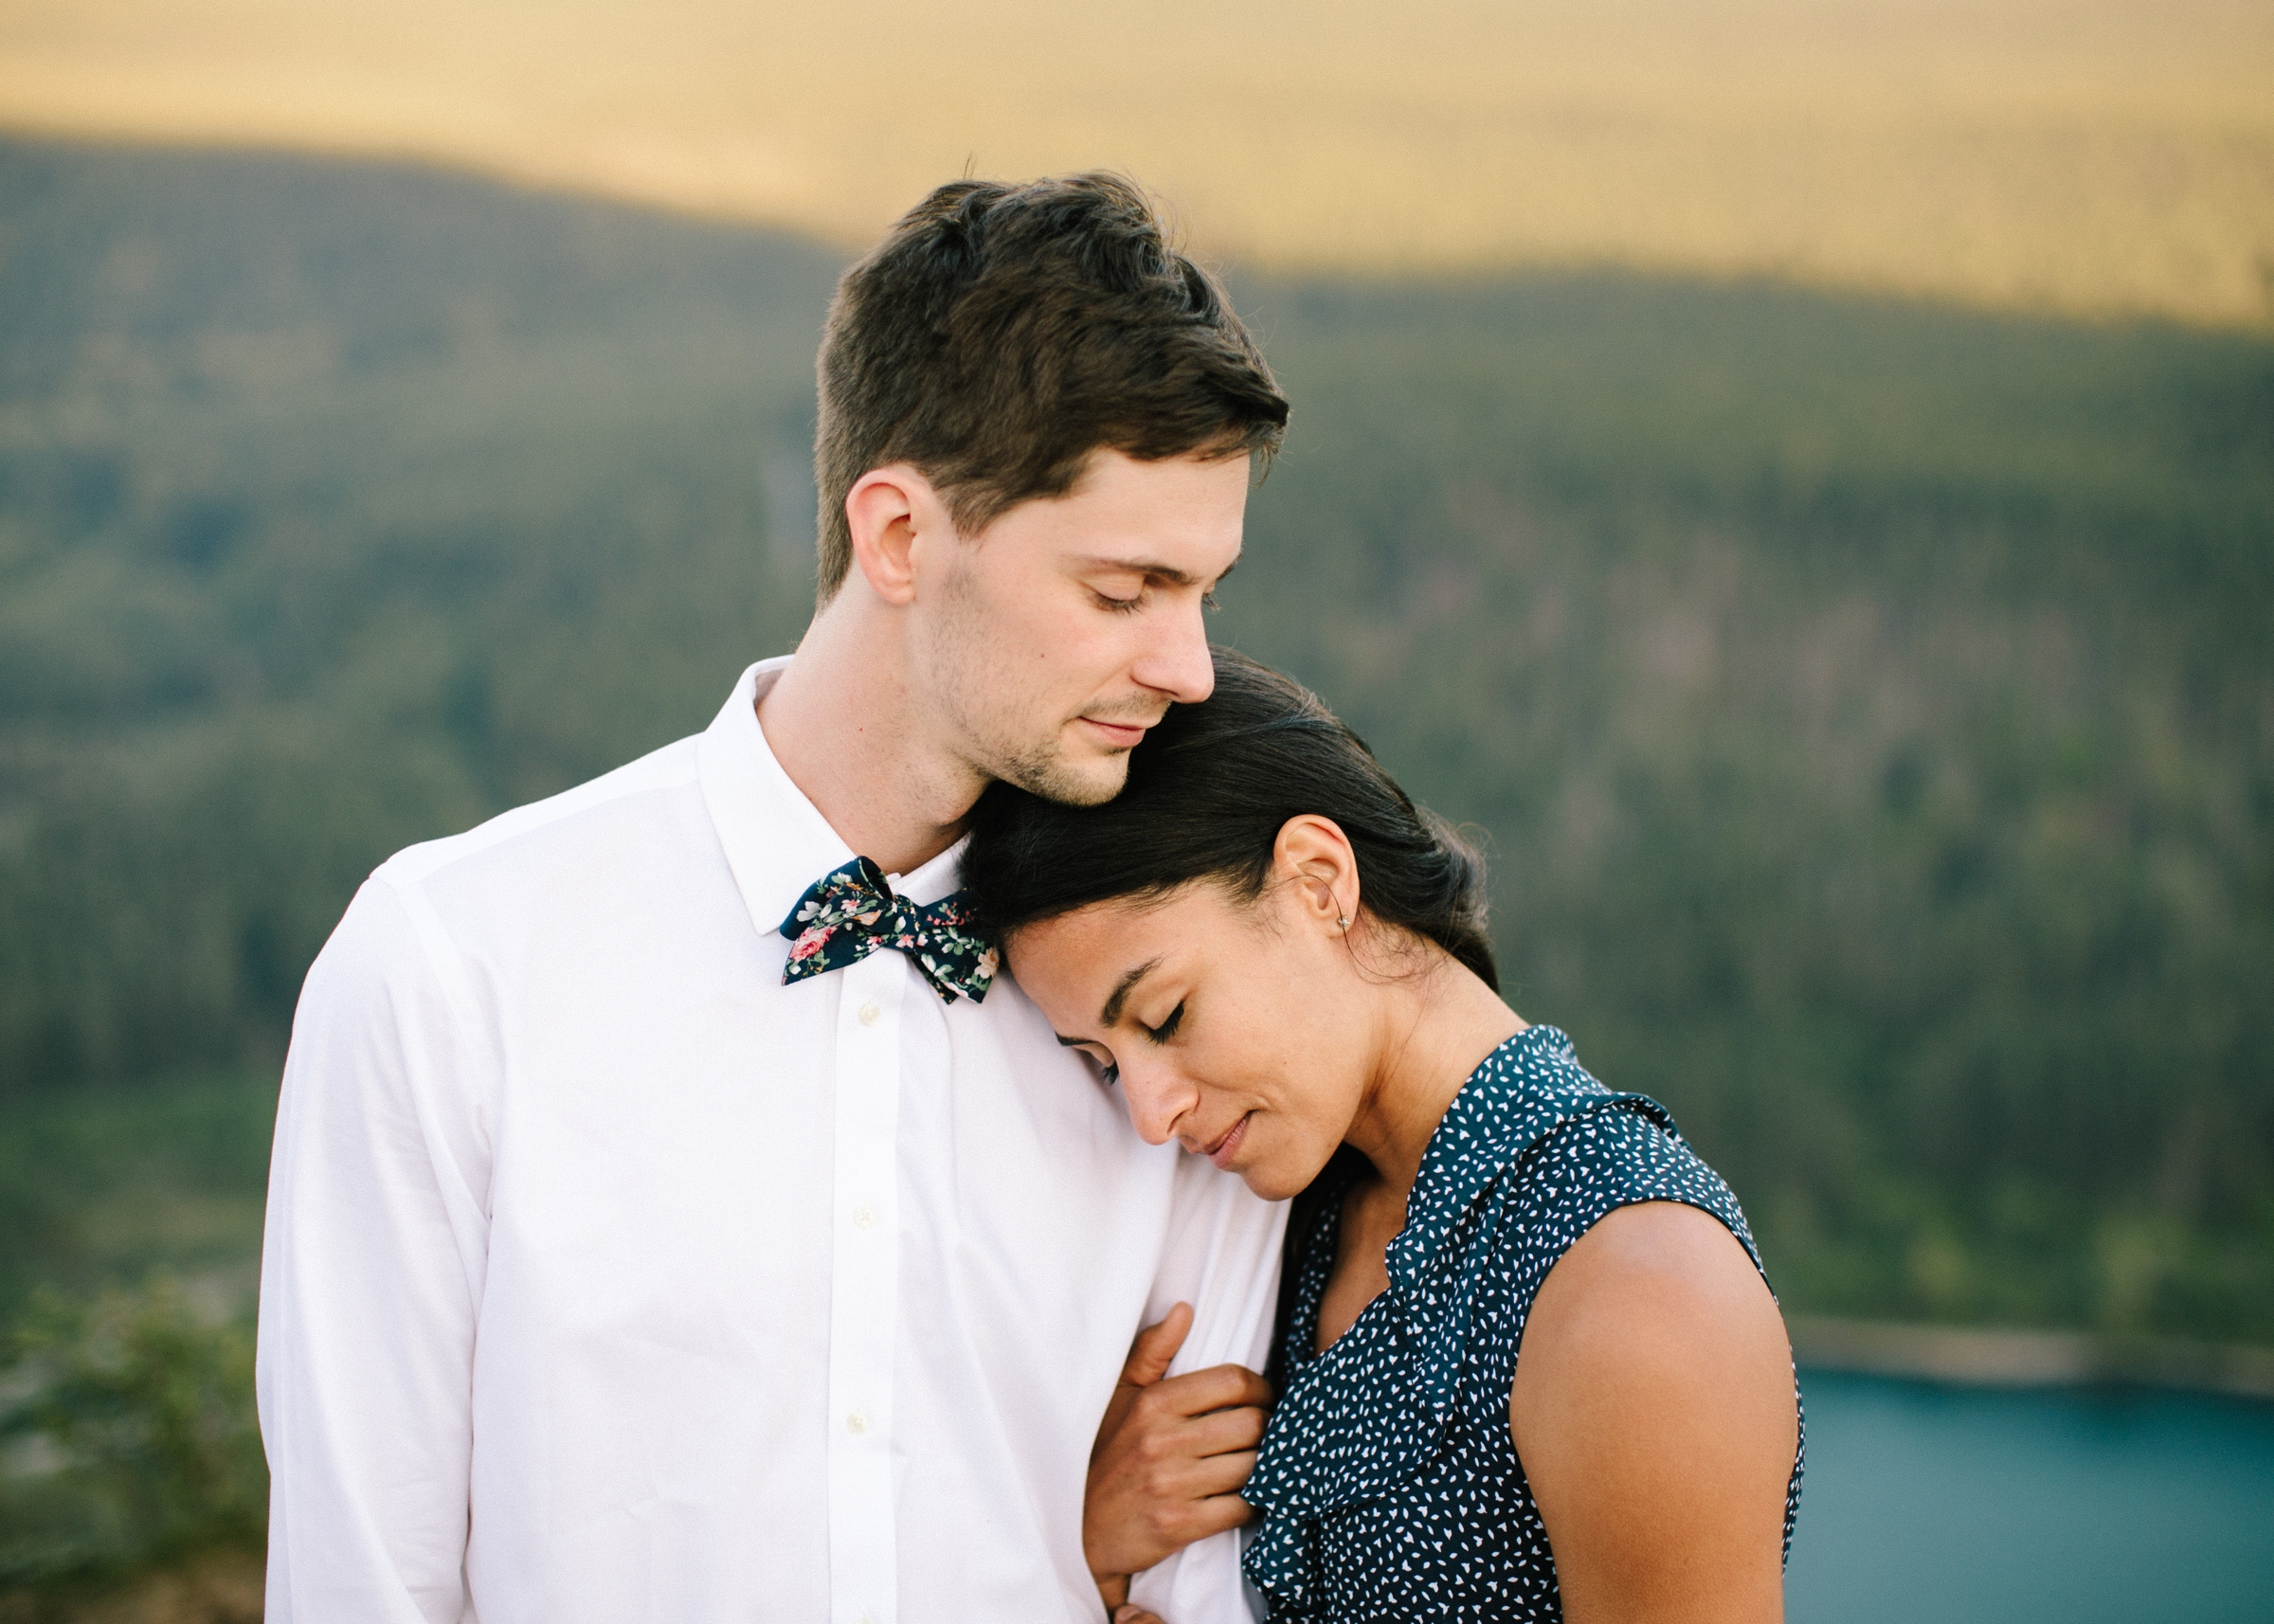 adventure-mountain-top-elopement-photographer-pnw-seattle-washington-wedding-engagement-hike-photography-catie-bergman_0014.jpg